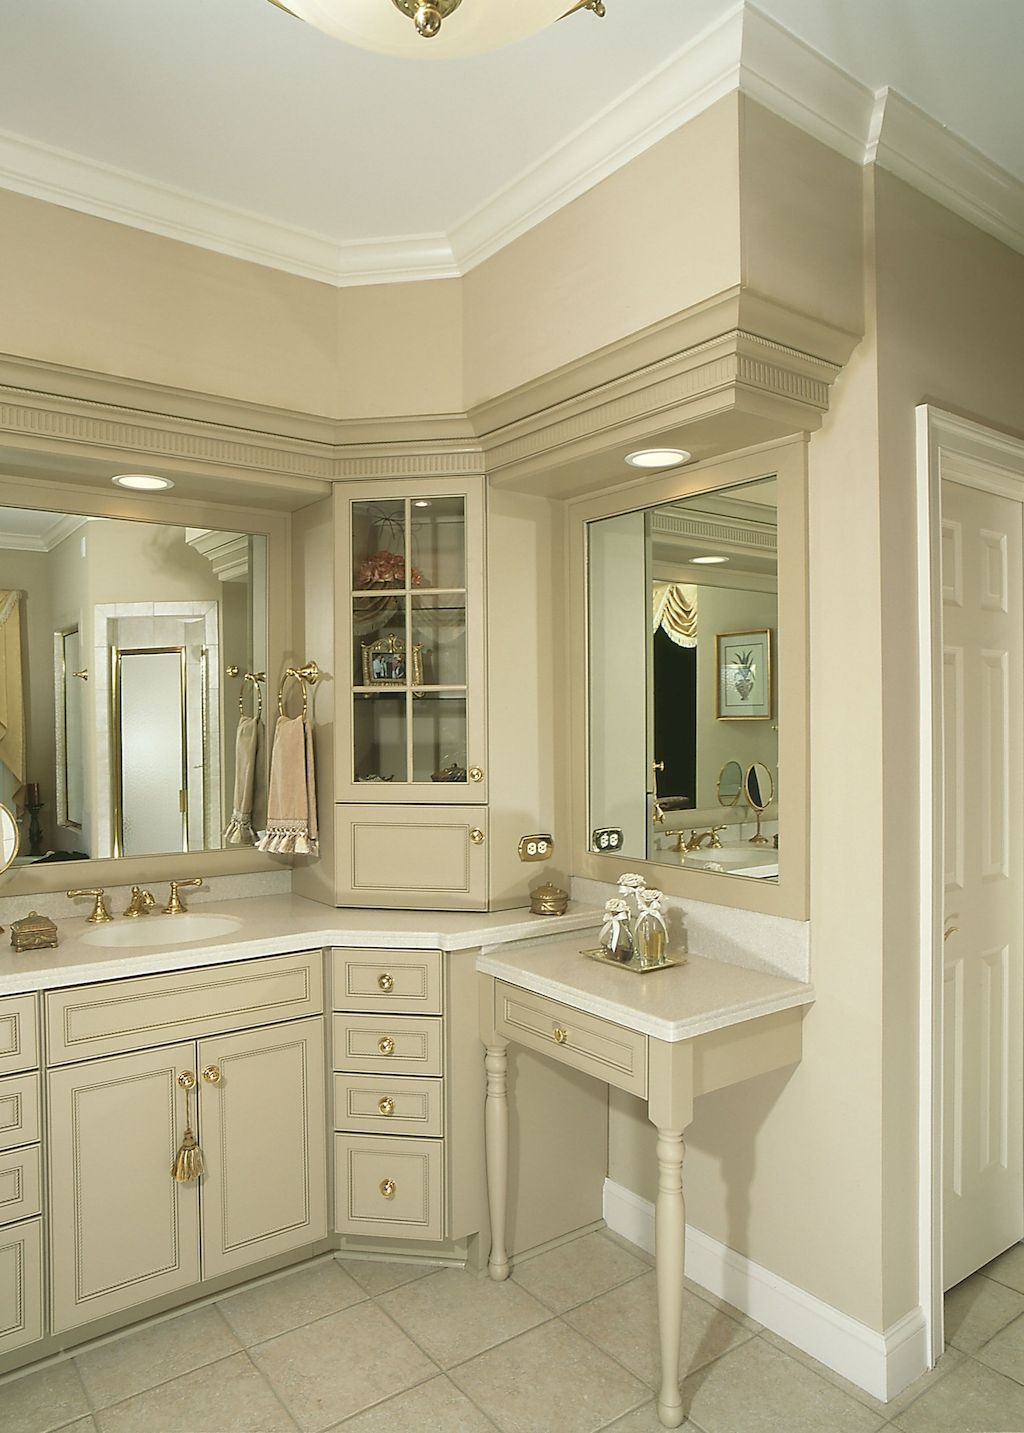 Free Standing Bathroom Cabinets Ideas Bathroom Remodel Cost